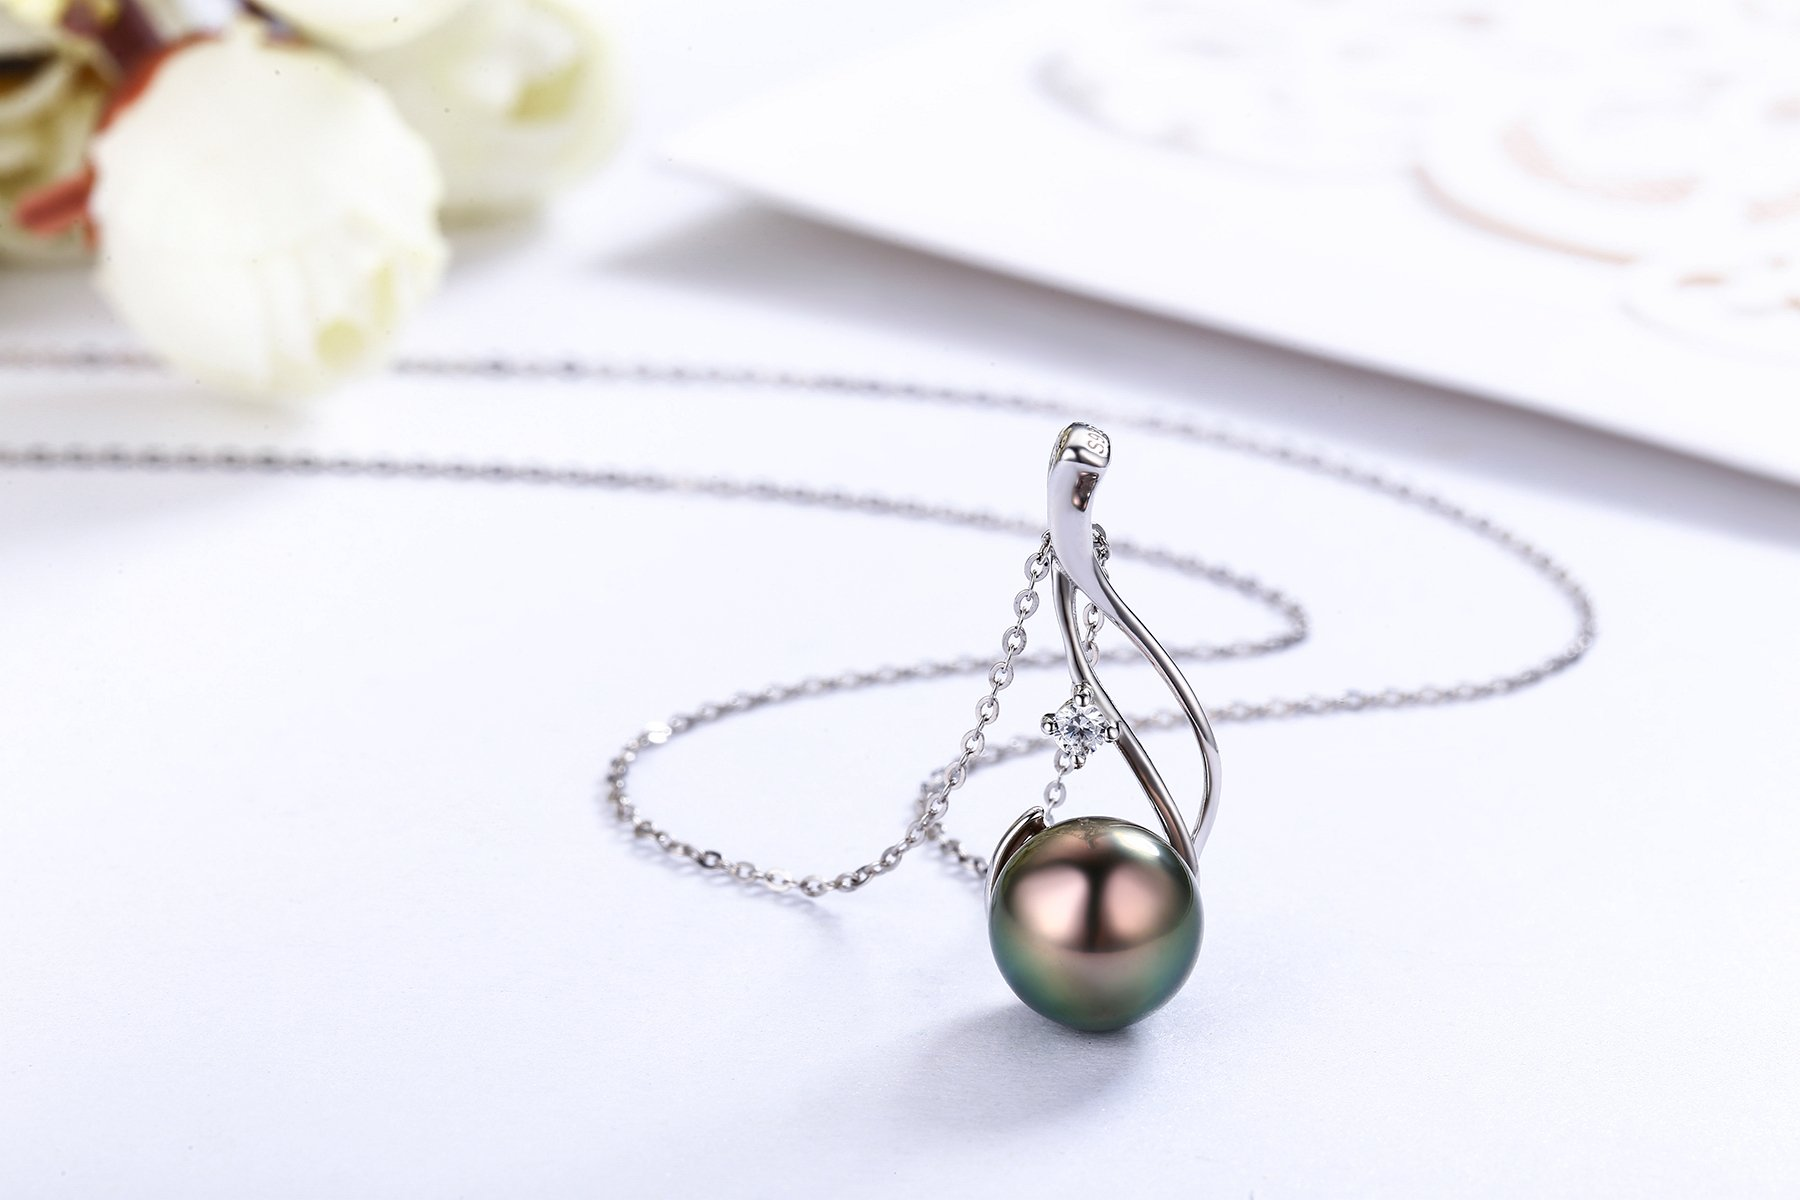 CHAULRI Authentic South Sea Tahitian Black Pearl Pendant Necklace 9-10mm Round 18K Gold Plated 925 Sterling Silver – Jewelry Gifts for Women Wife Mom Daughter